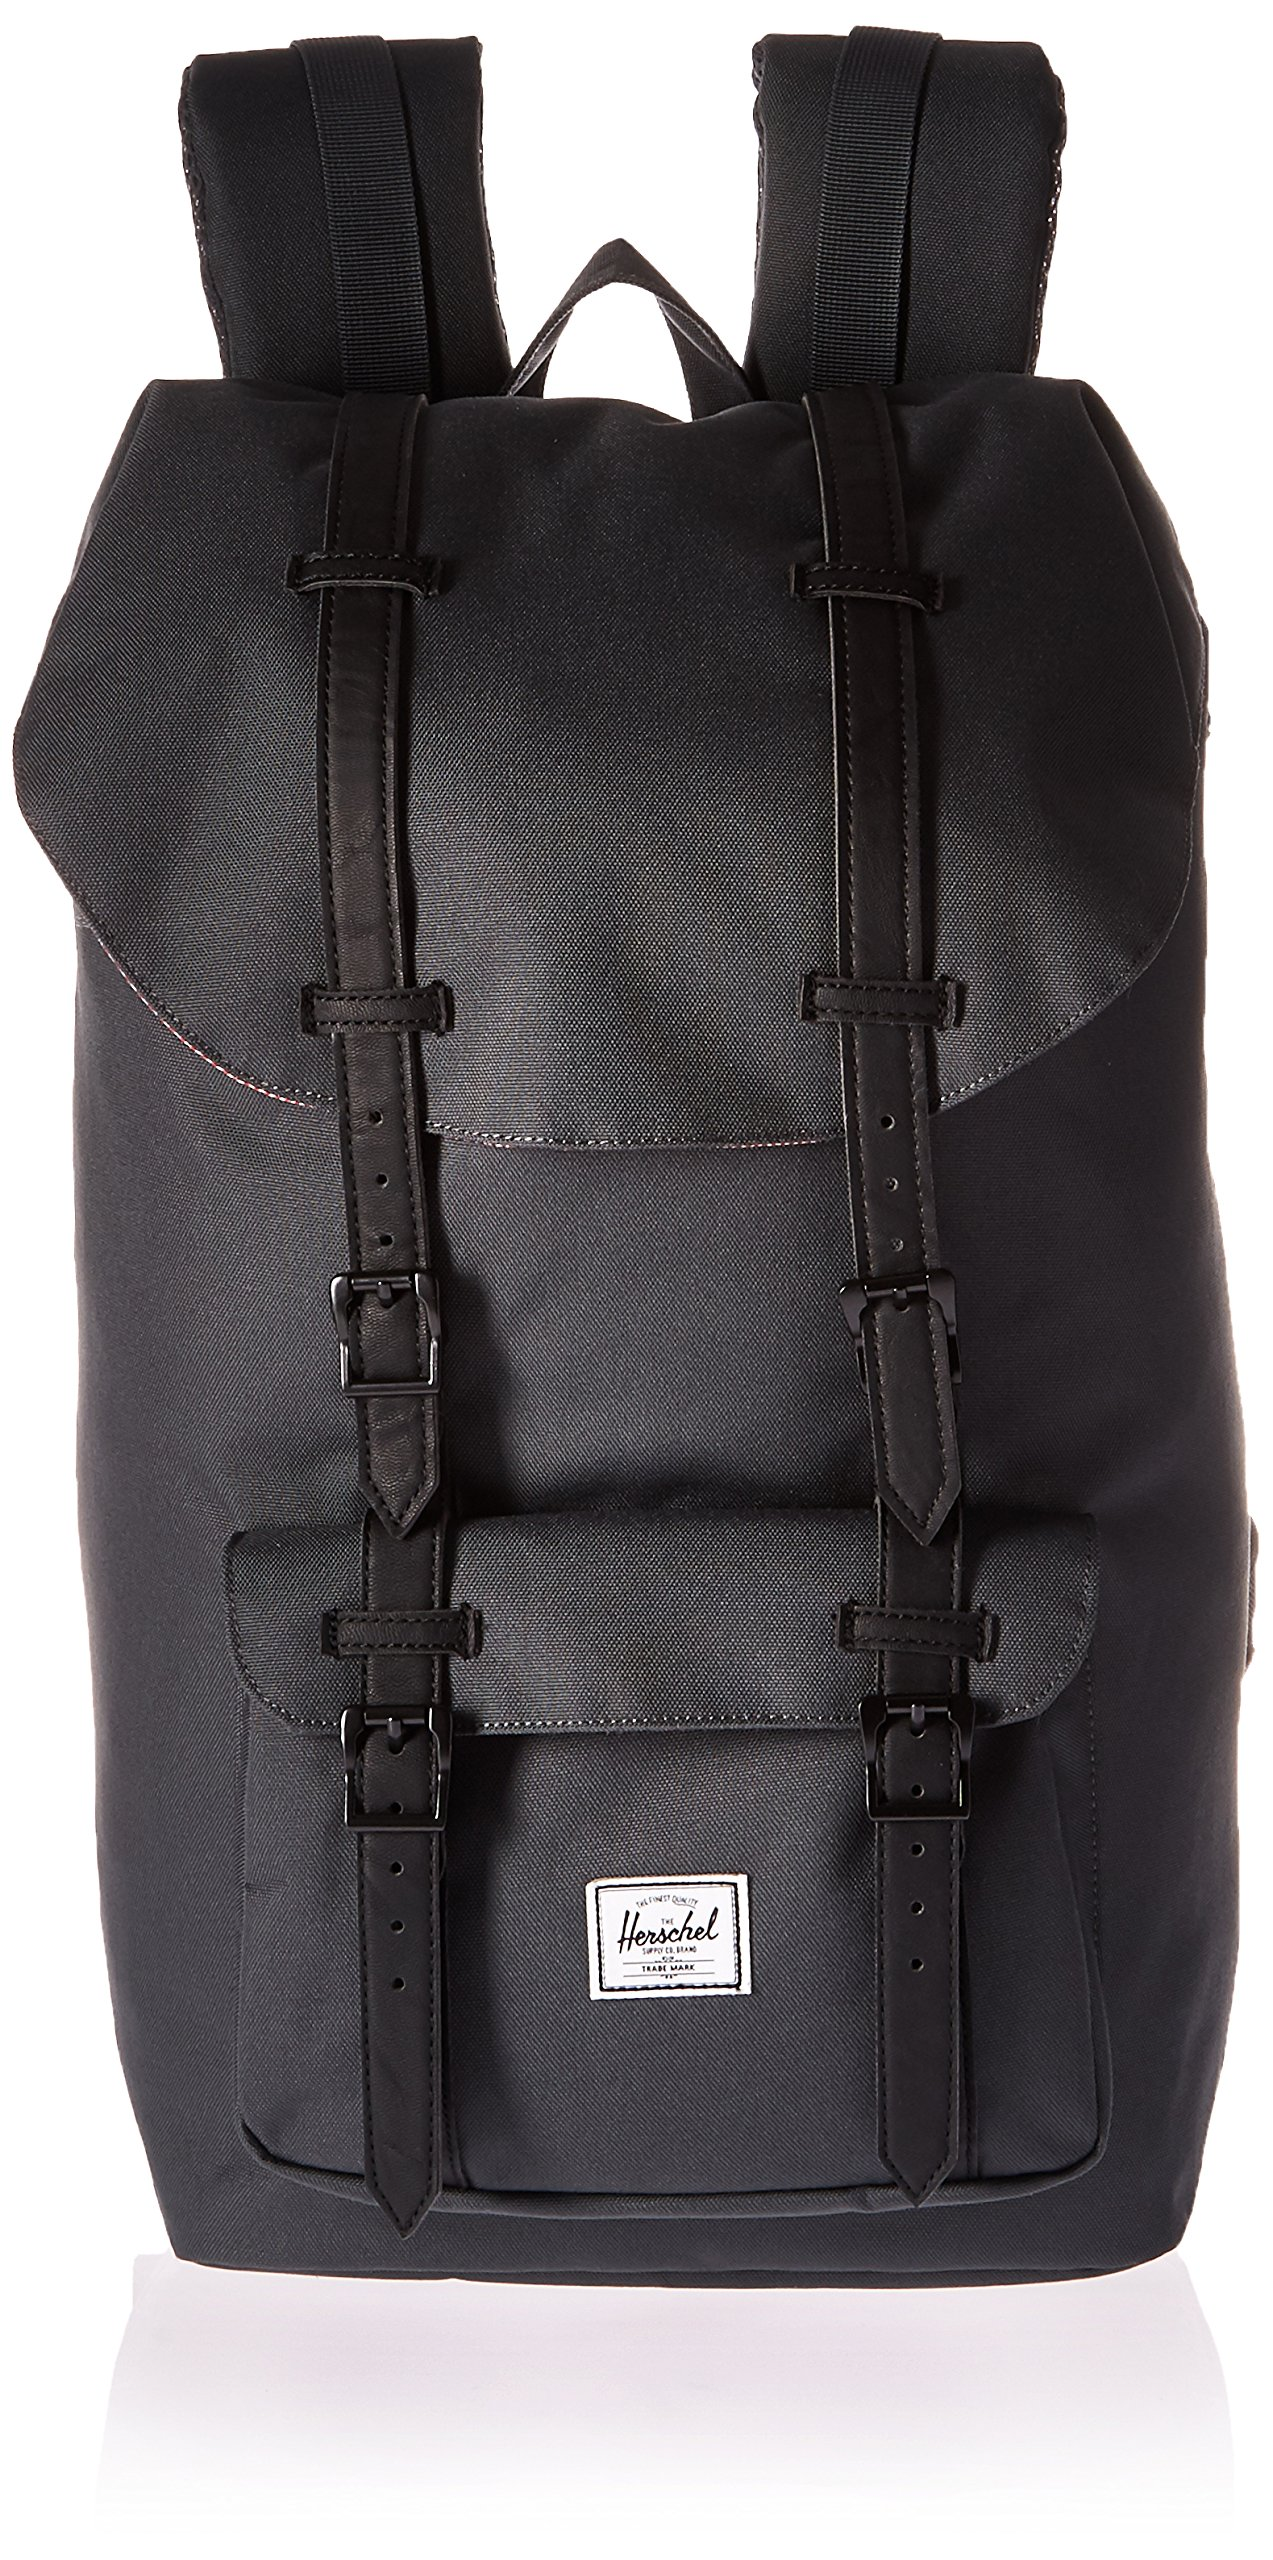 Herschel Supply Co. Little America Backpack, Dark Shadow/Black Synthetic Leather, One Size